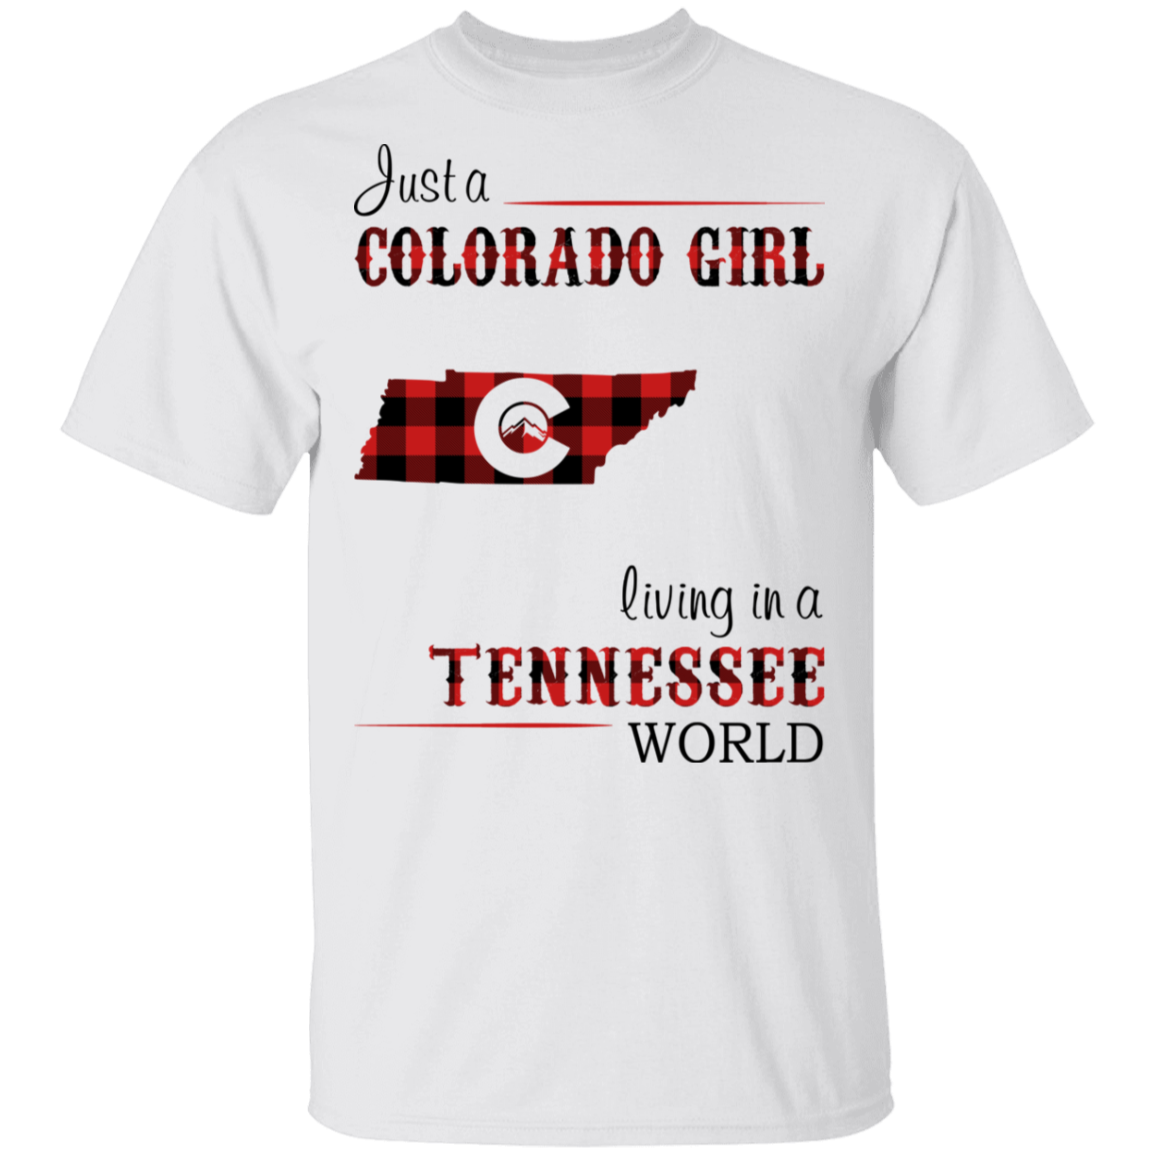 JUST A COLORADO GIRL LIVING IN A TENNESSEE WORLD